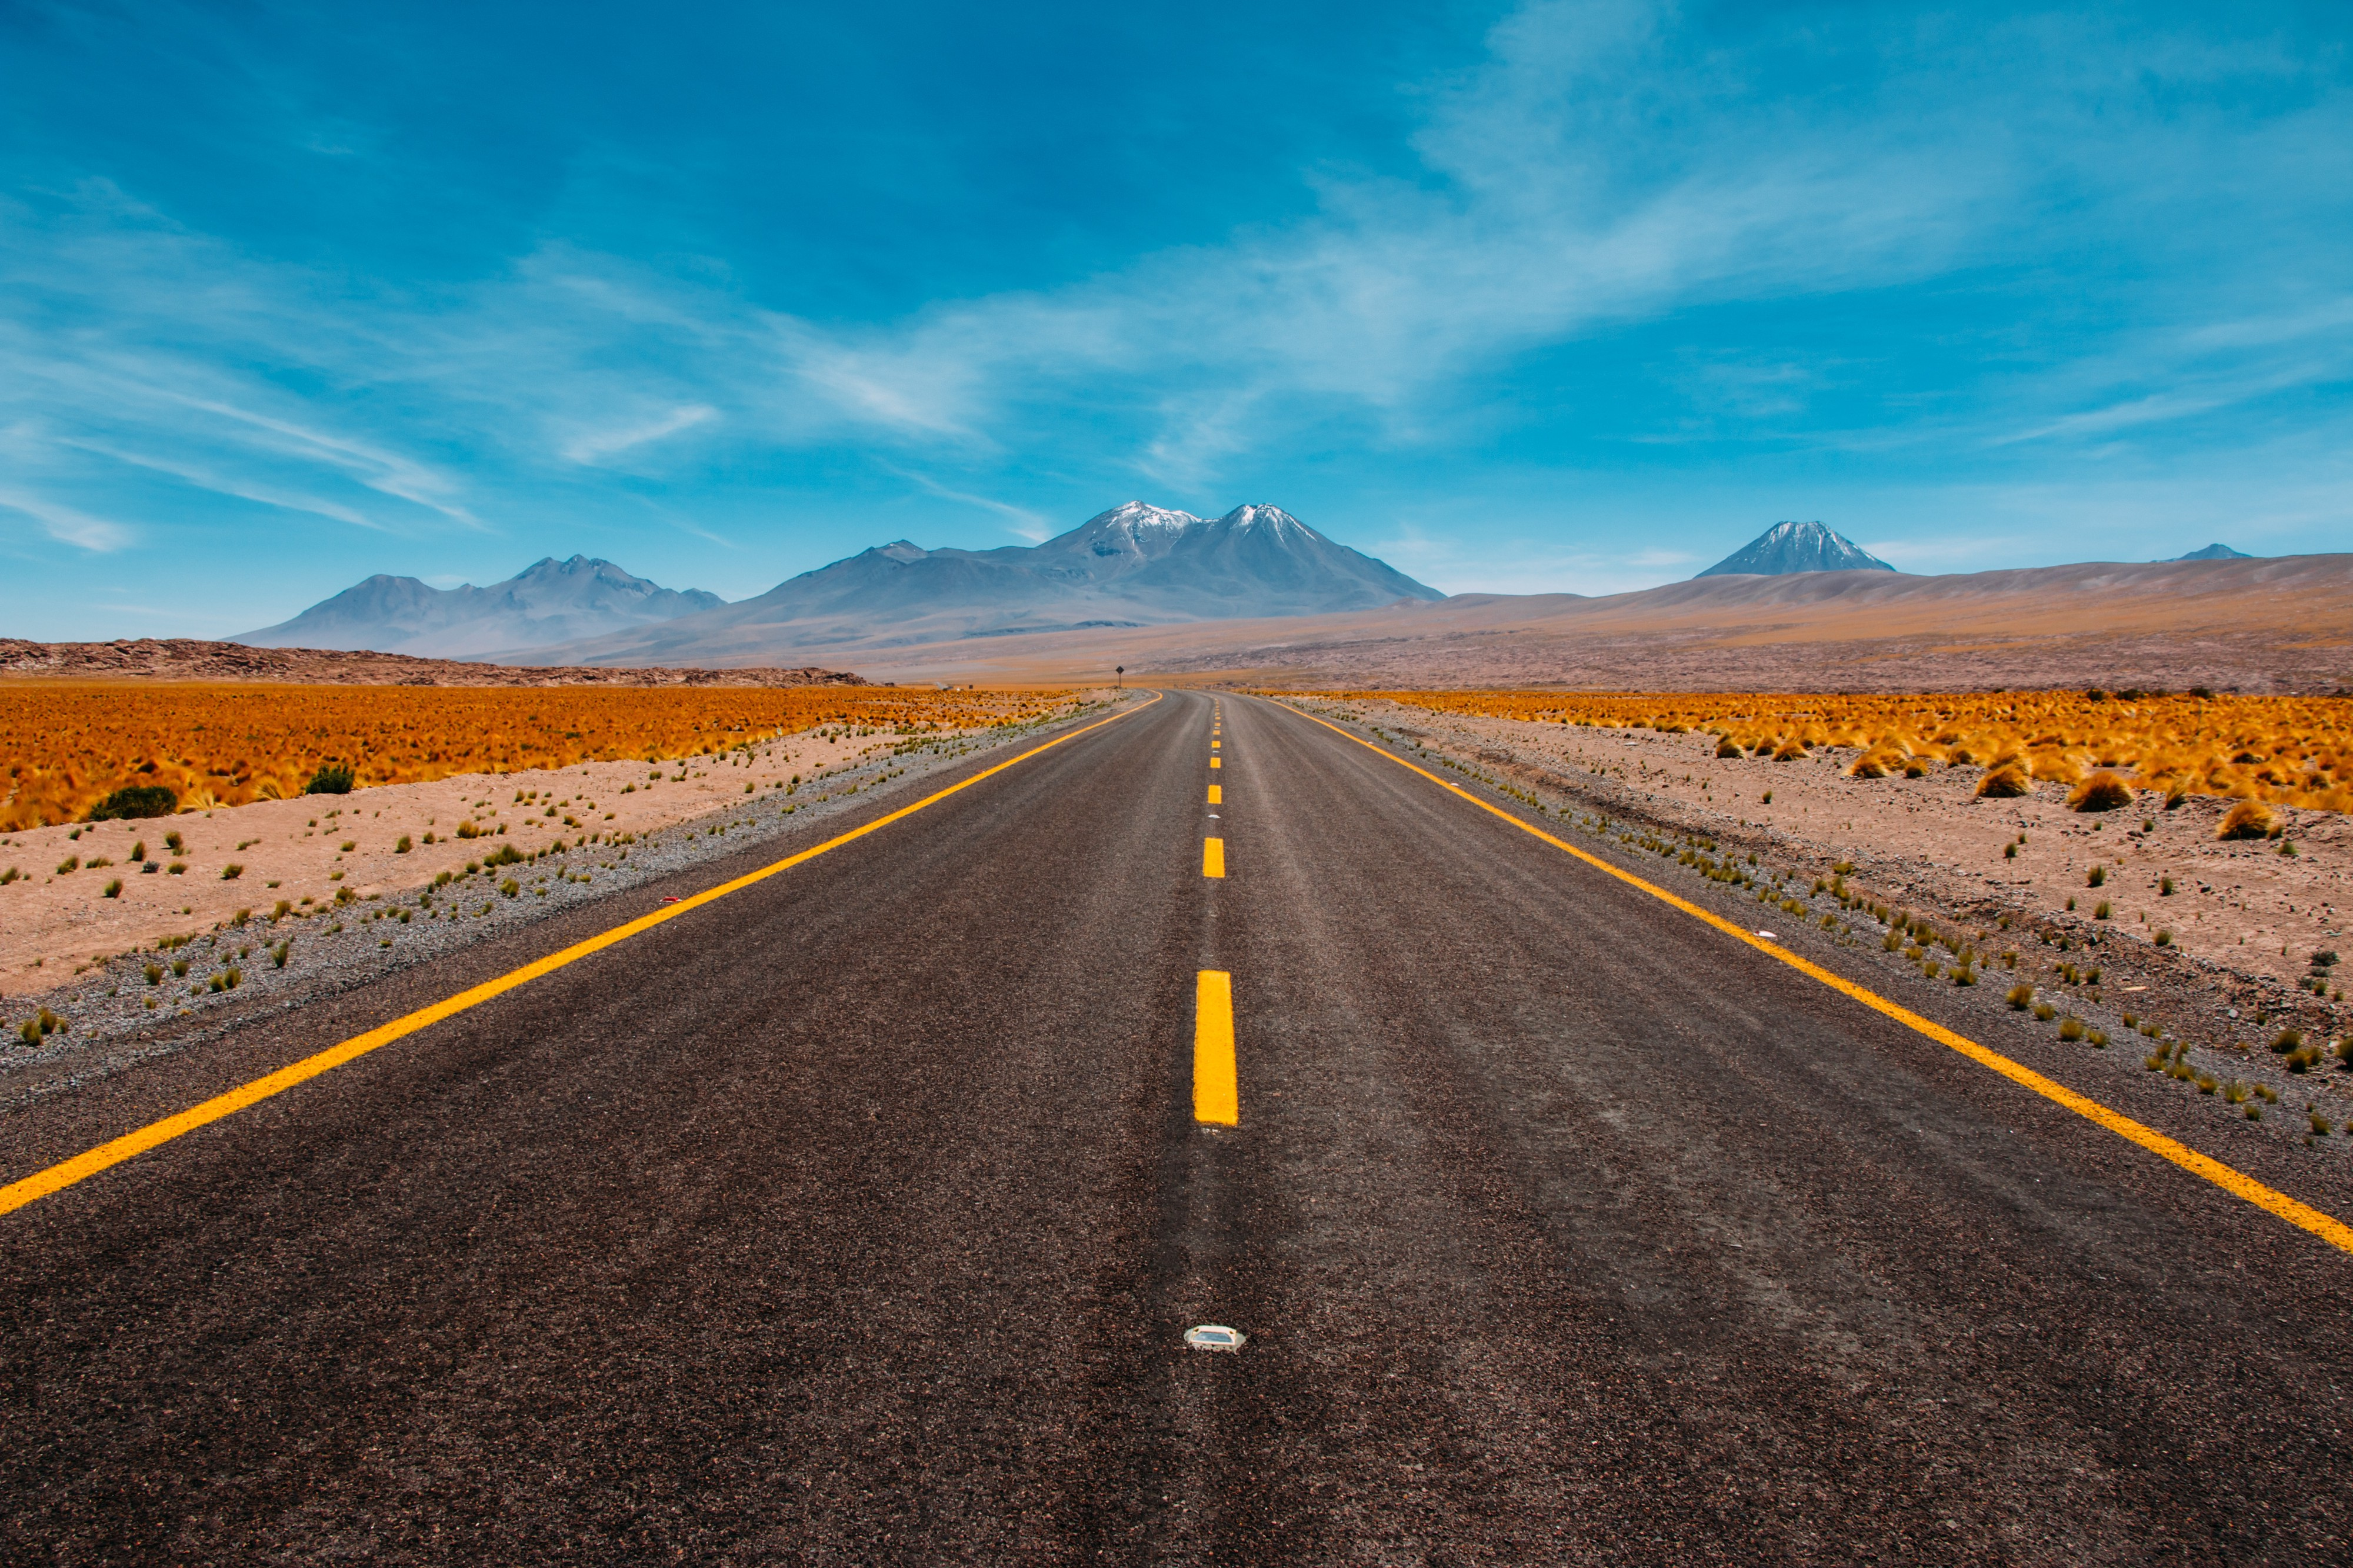 Photo of a straight long road leading into the far distance to low mountains